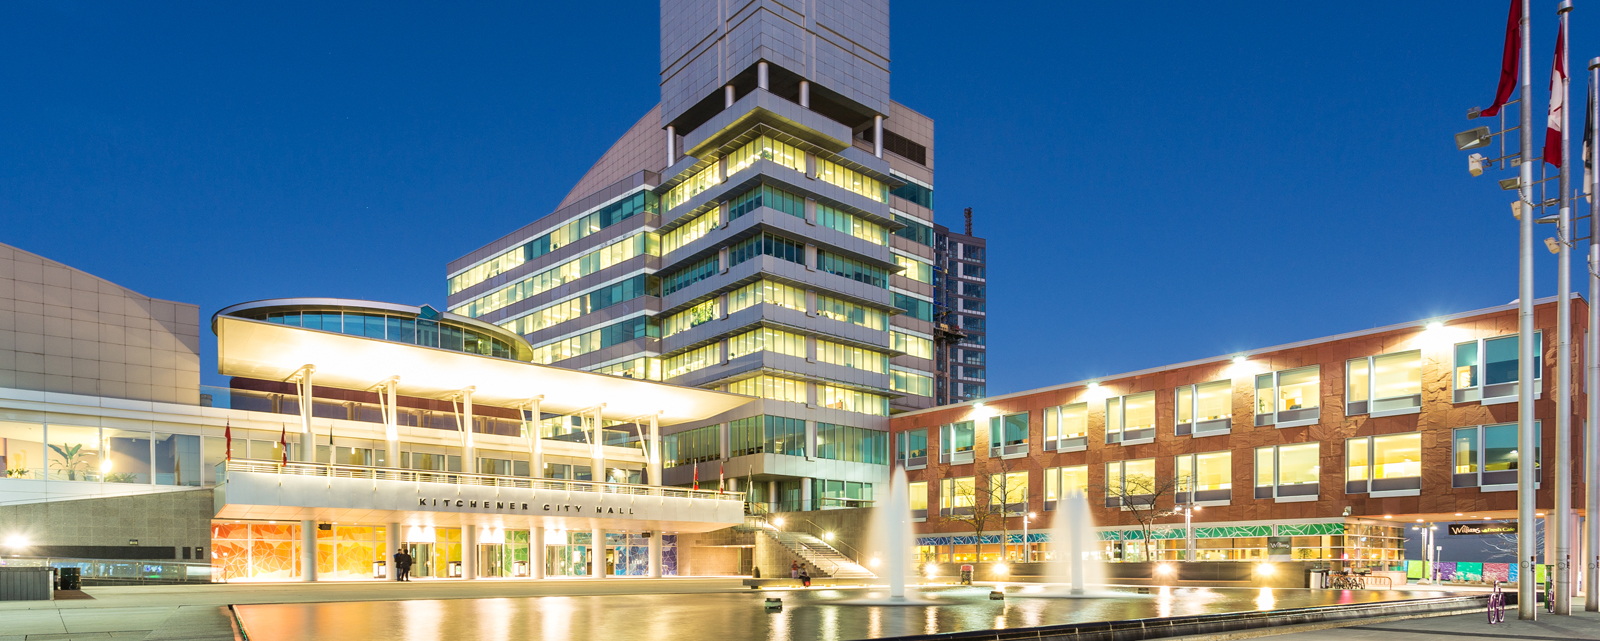 Kitchener City - modern and dynamic place to move to